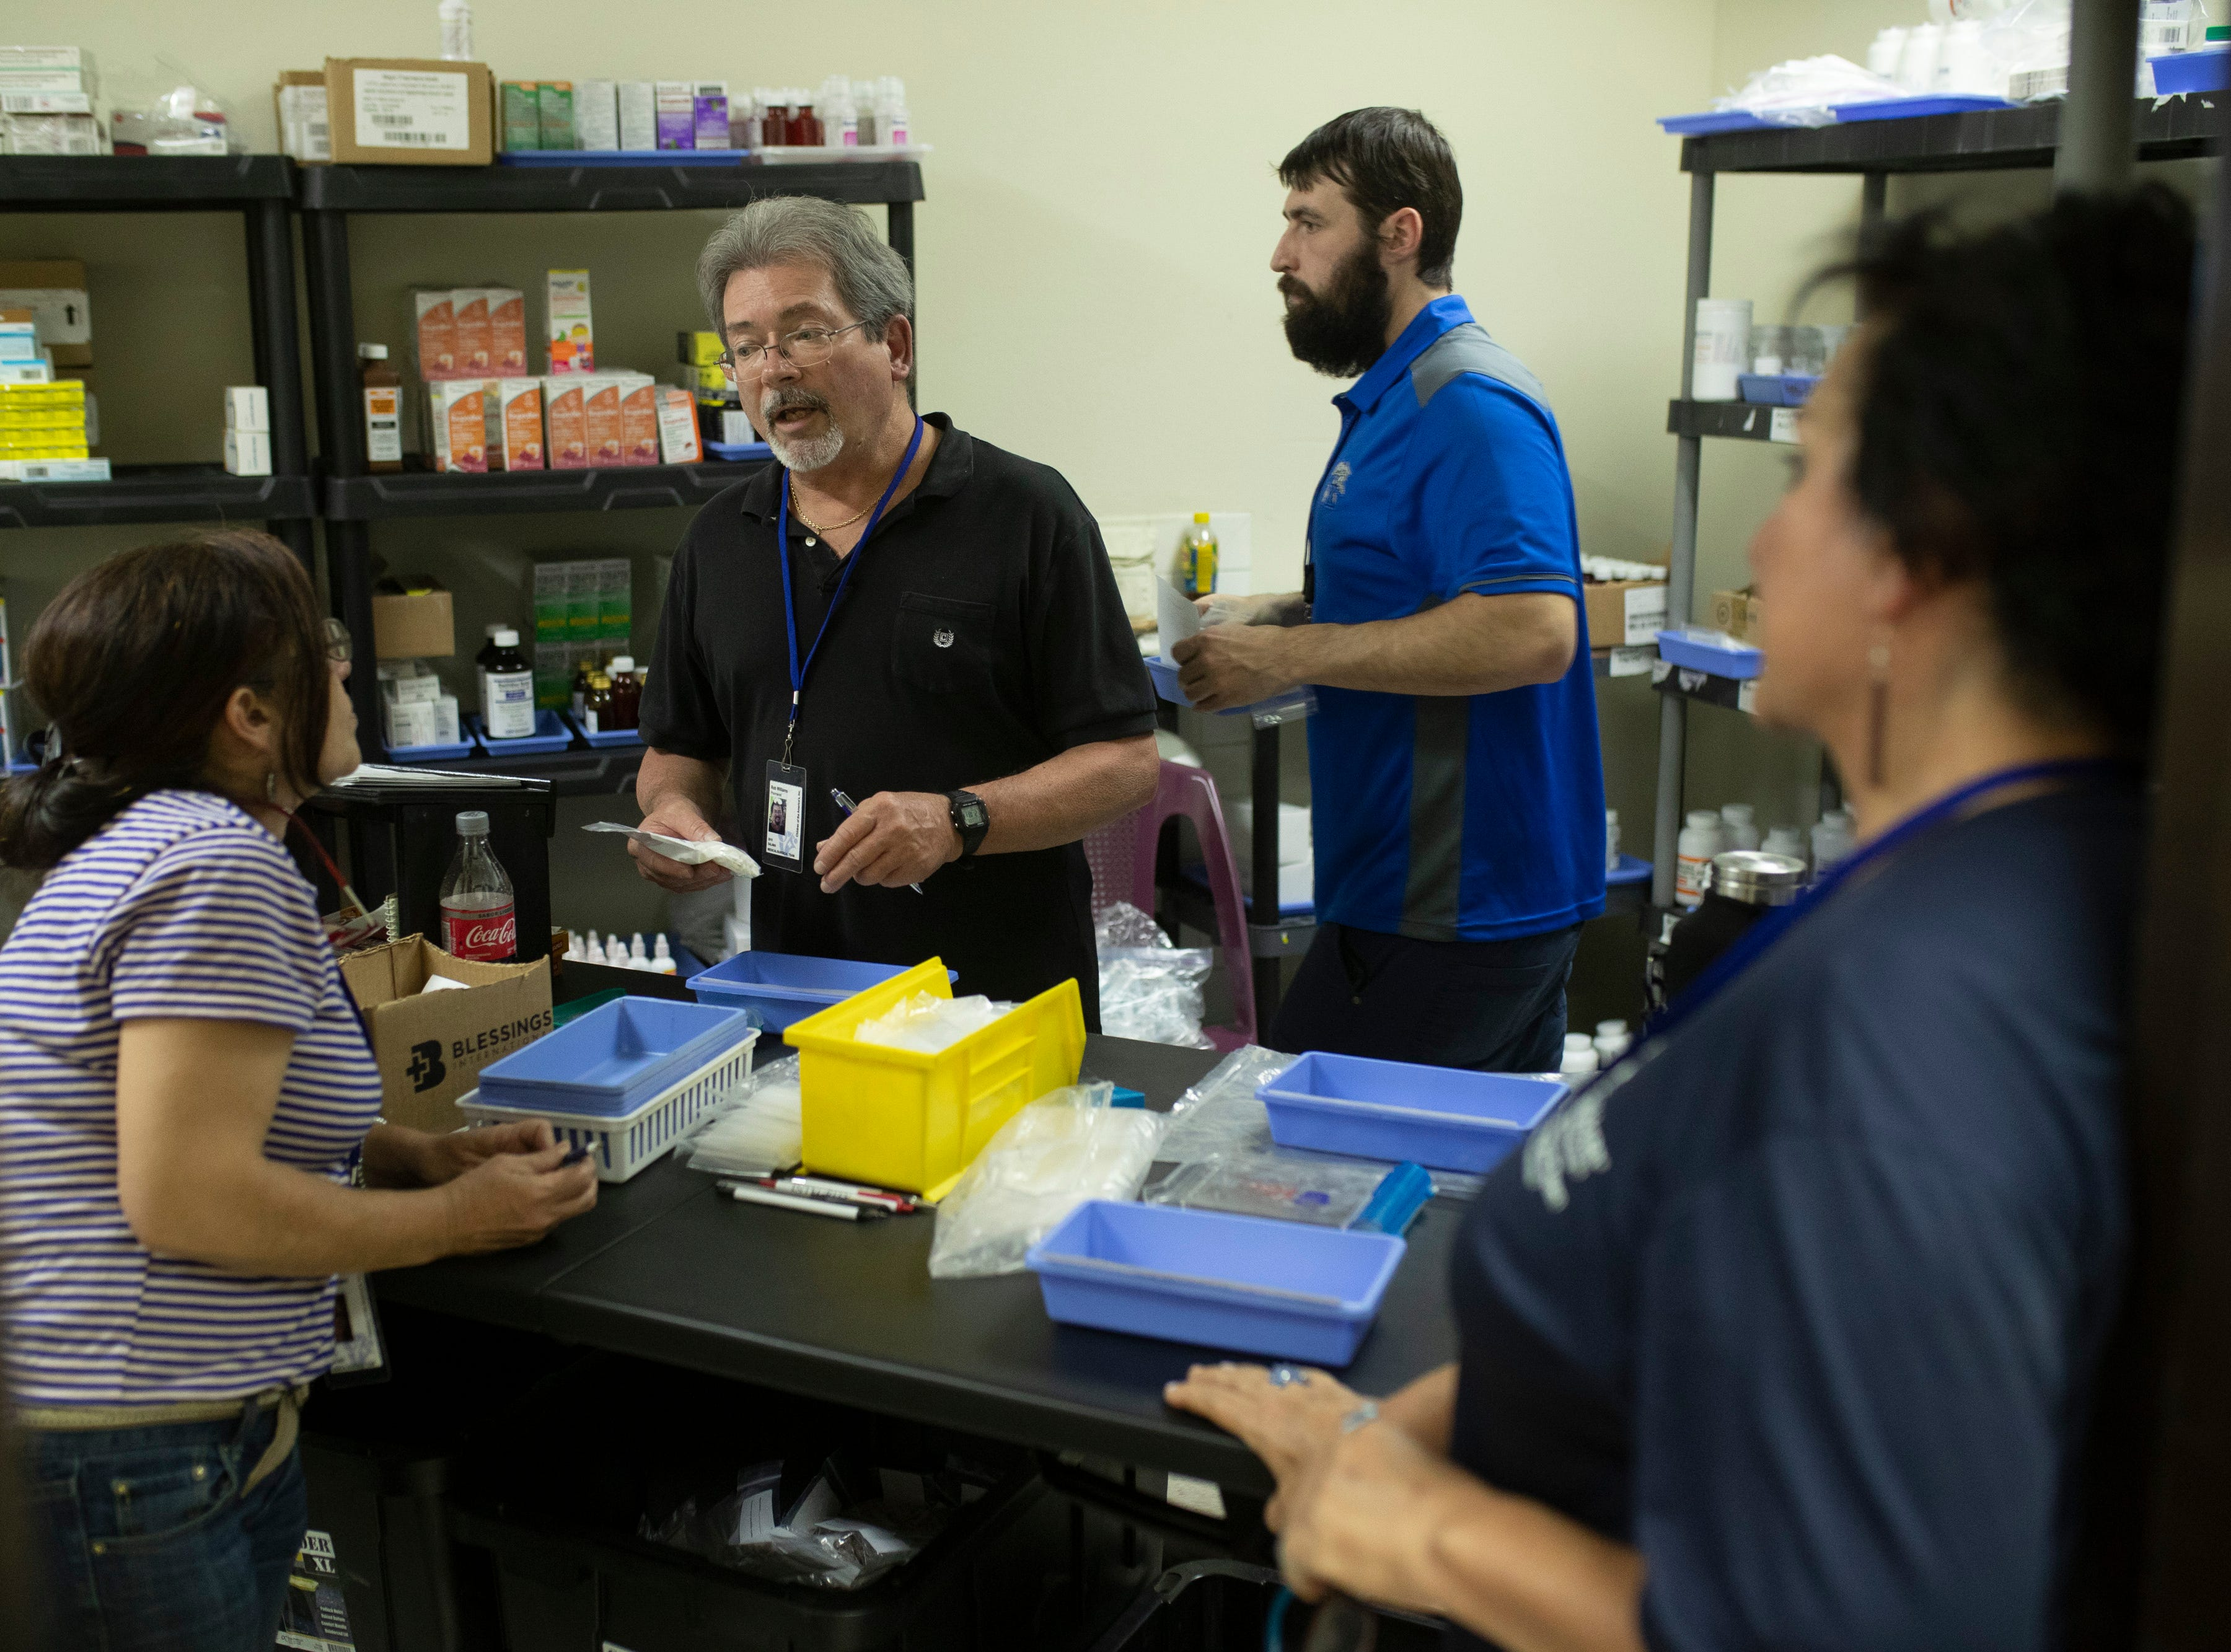 COTA pharmacist Rob Williams, PharmD, center, works on filling orders at the Hospital Nacional de Salamá. Jan. 22, 2019